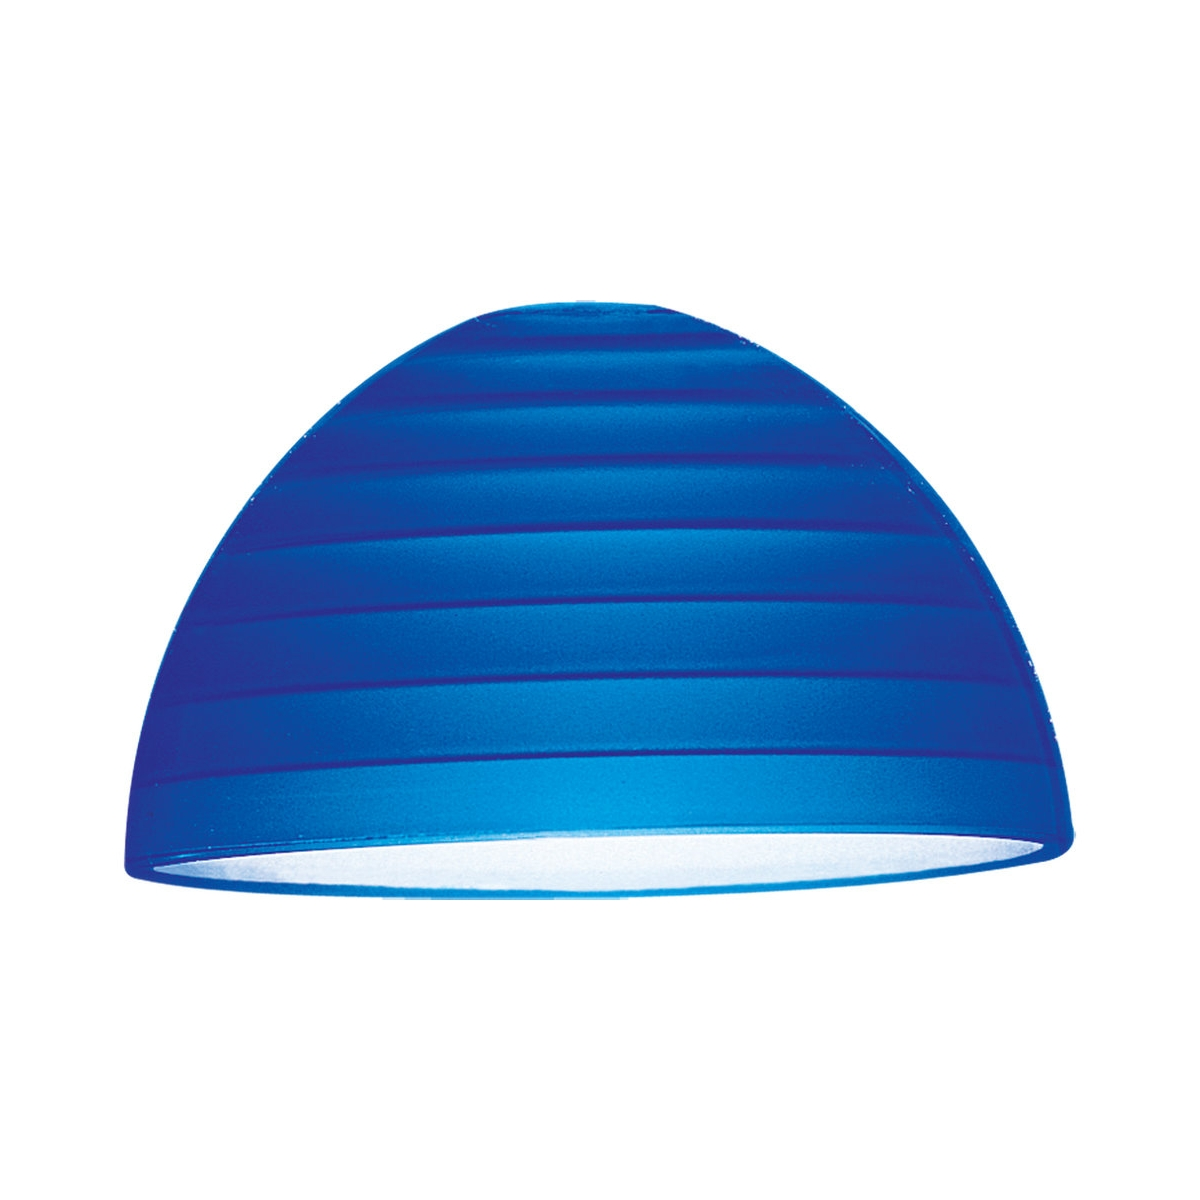 Sea Gull Lighting Ambiance Transitions - Pendant Glass/Shade in Cobalt Blue 94245-657 photo